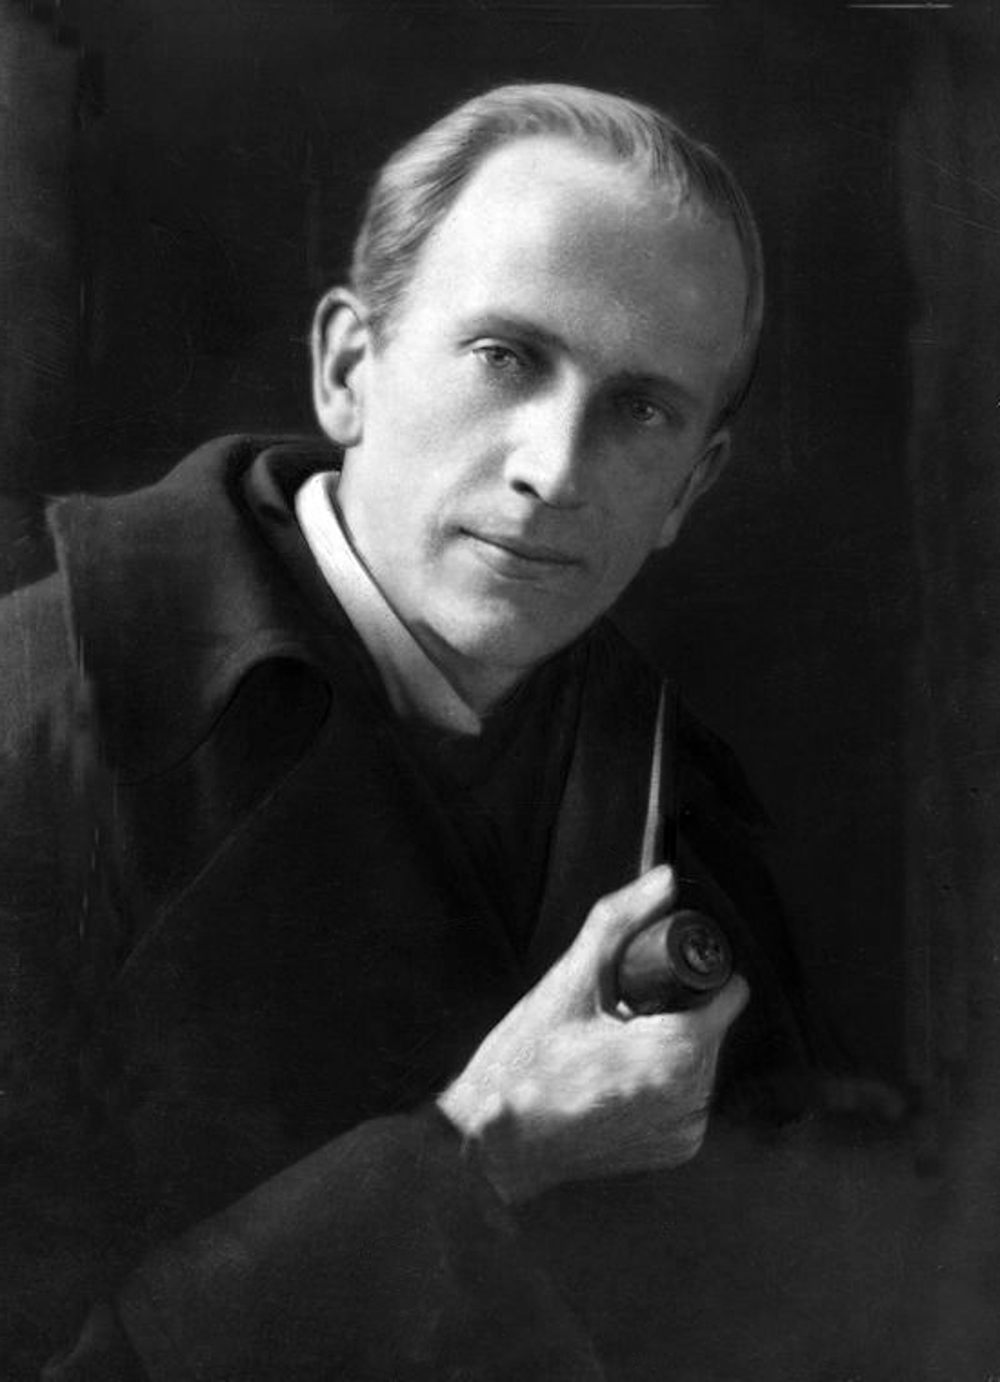 A.A. Milne, Winnie-the-Pooh, famous Londoners